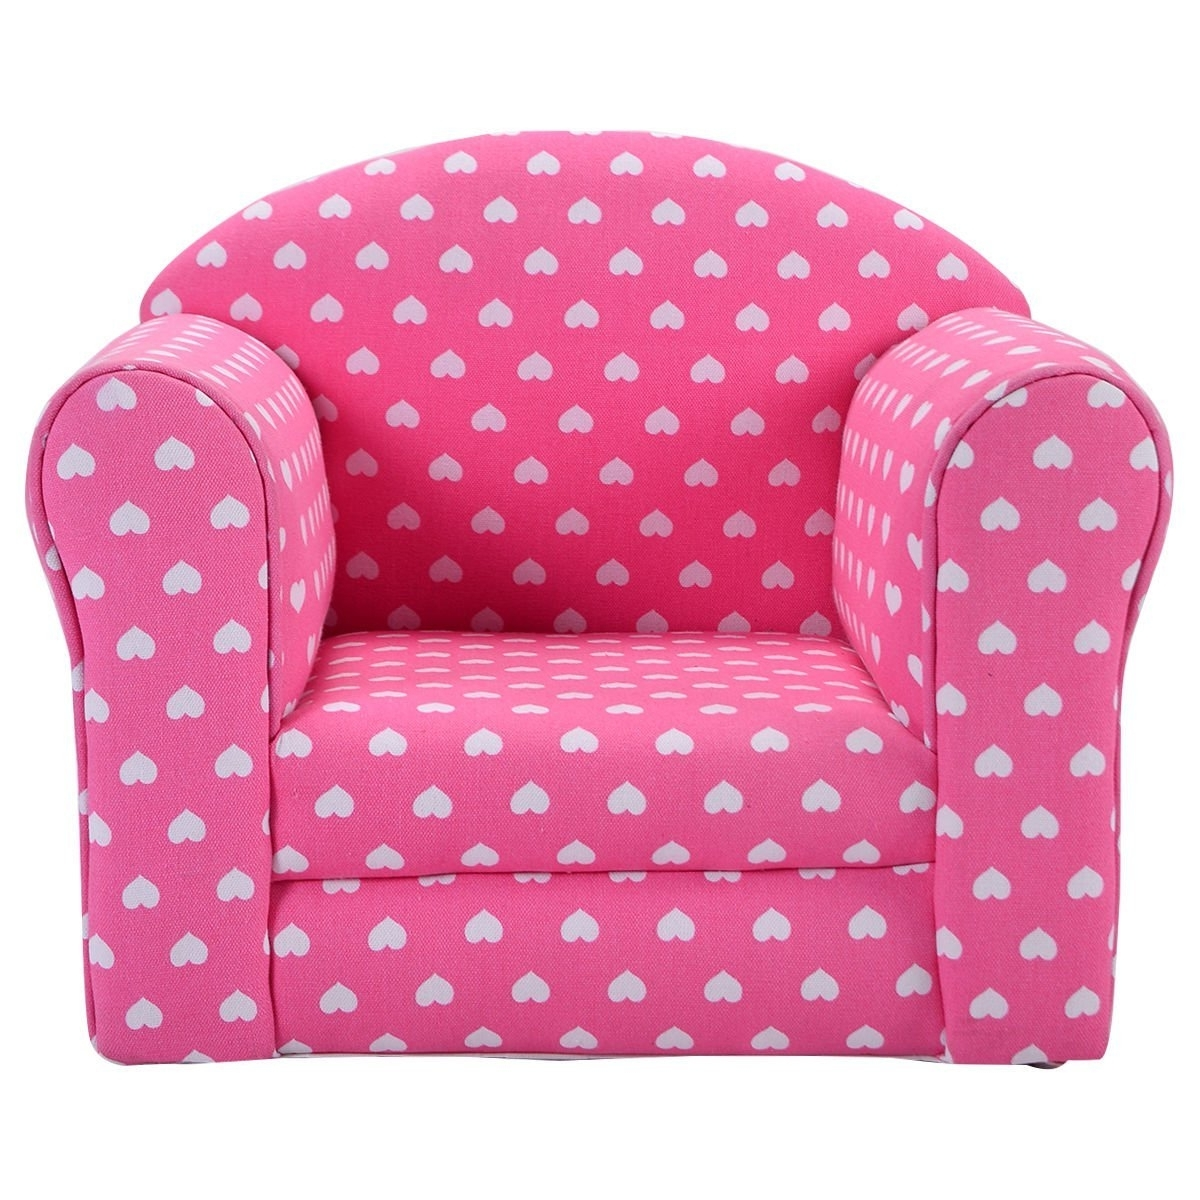 Folding Sofa Chairs In Recent Sofa : Childrens Folding Sofa Toddler Leather Chair Marshmallow (View 8 of 20)